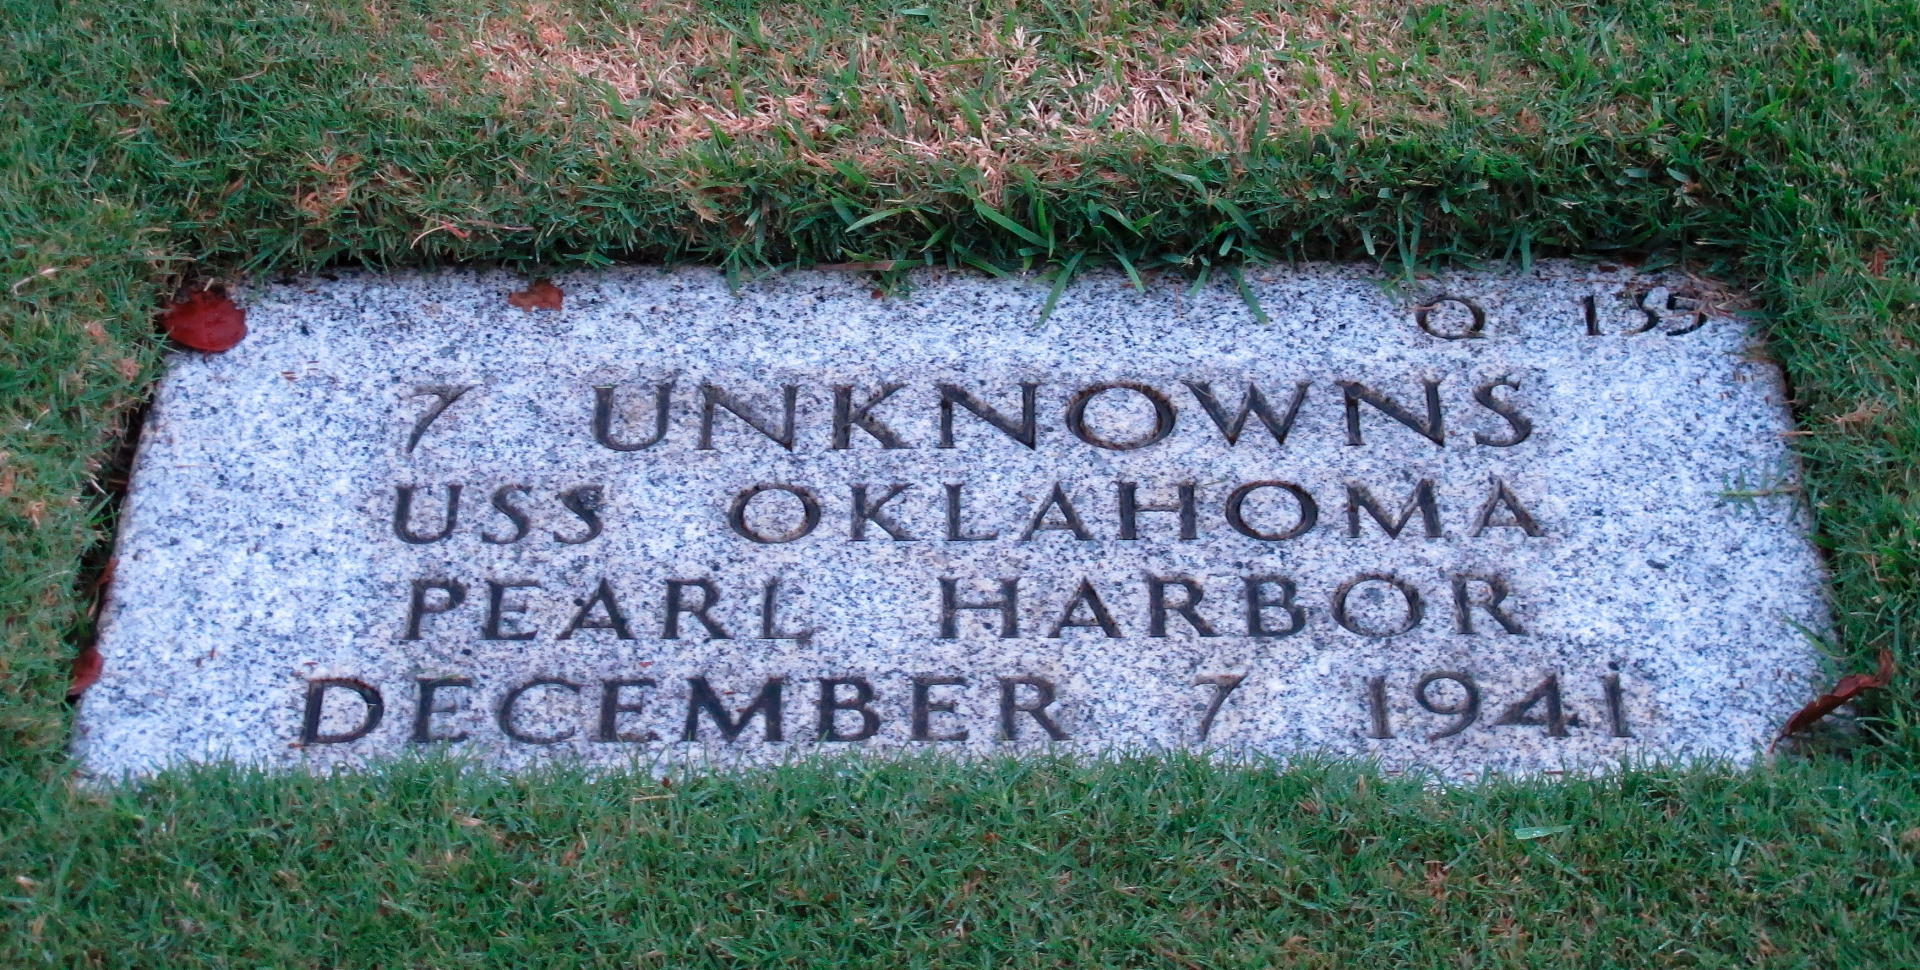 Pearl Harbor re-burials across the US give families closure